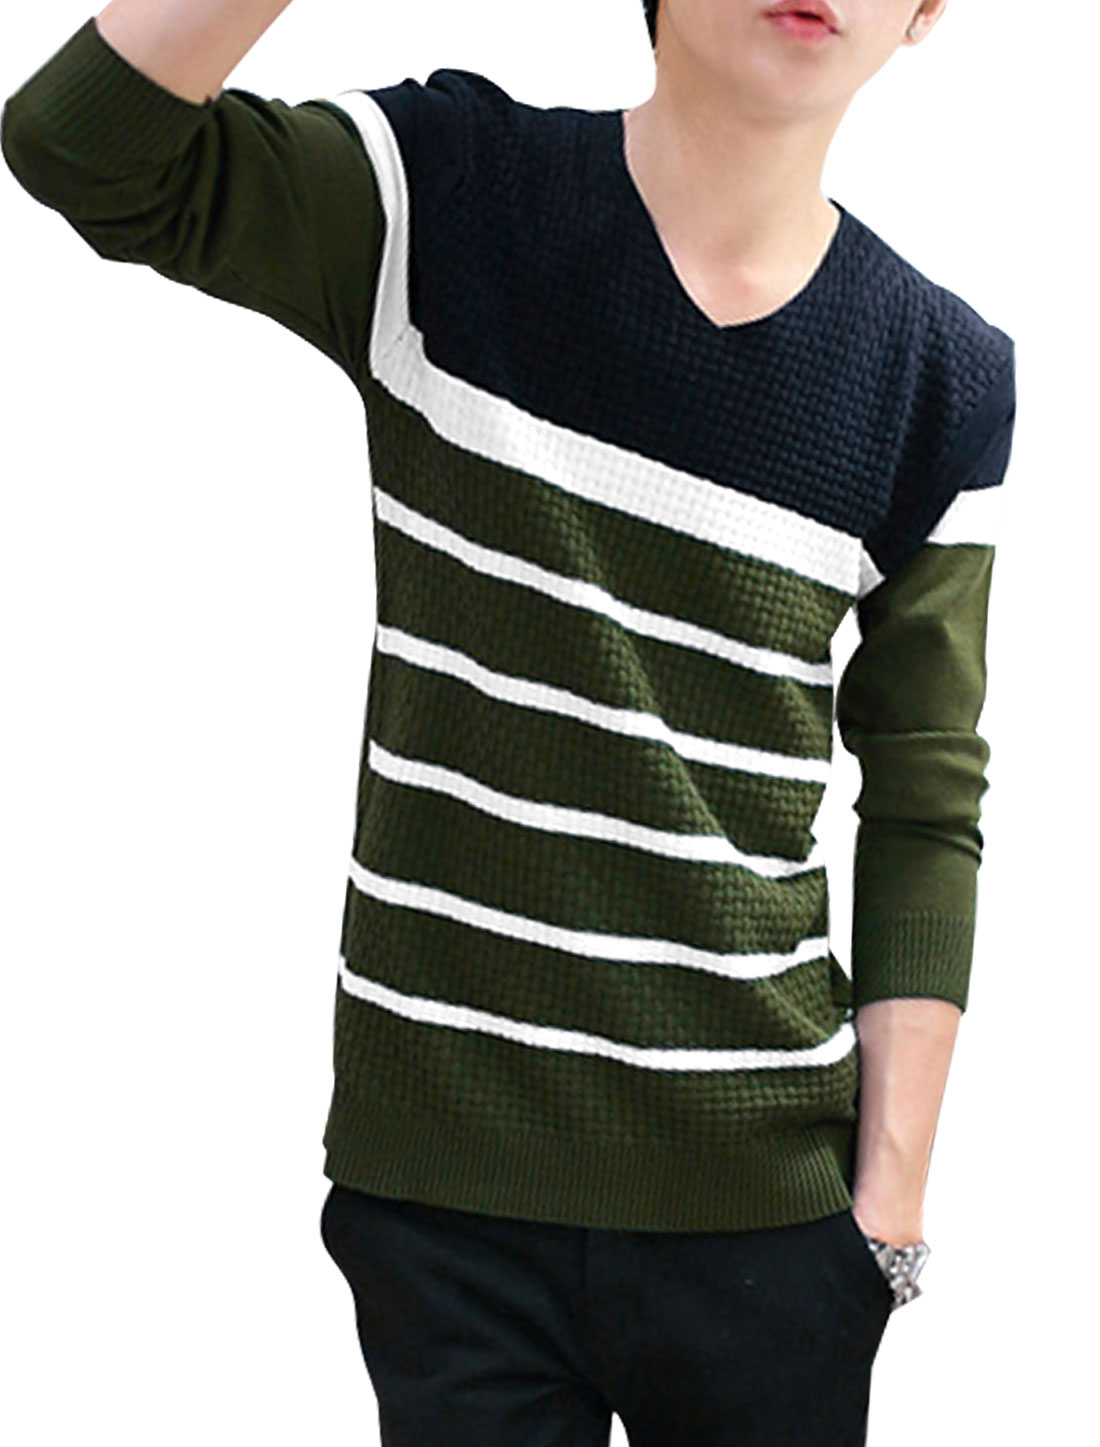 Men V Neck Stripes Color Block Knit Shirt Navy Blue Dusty Green S